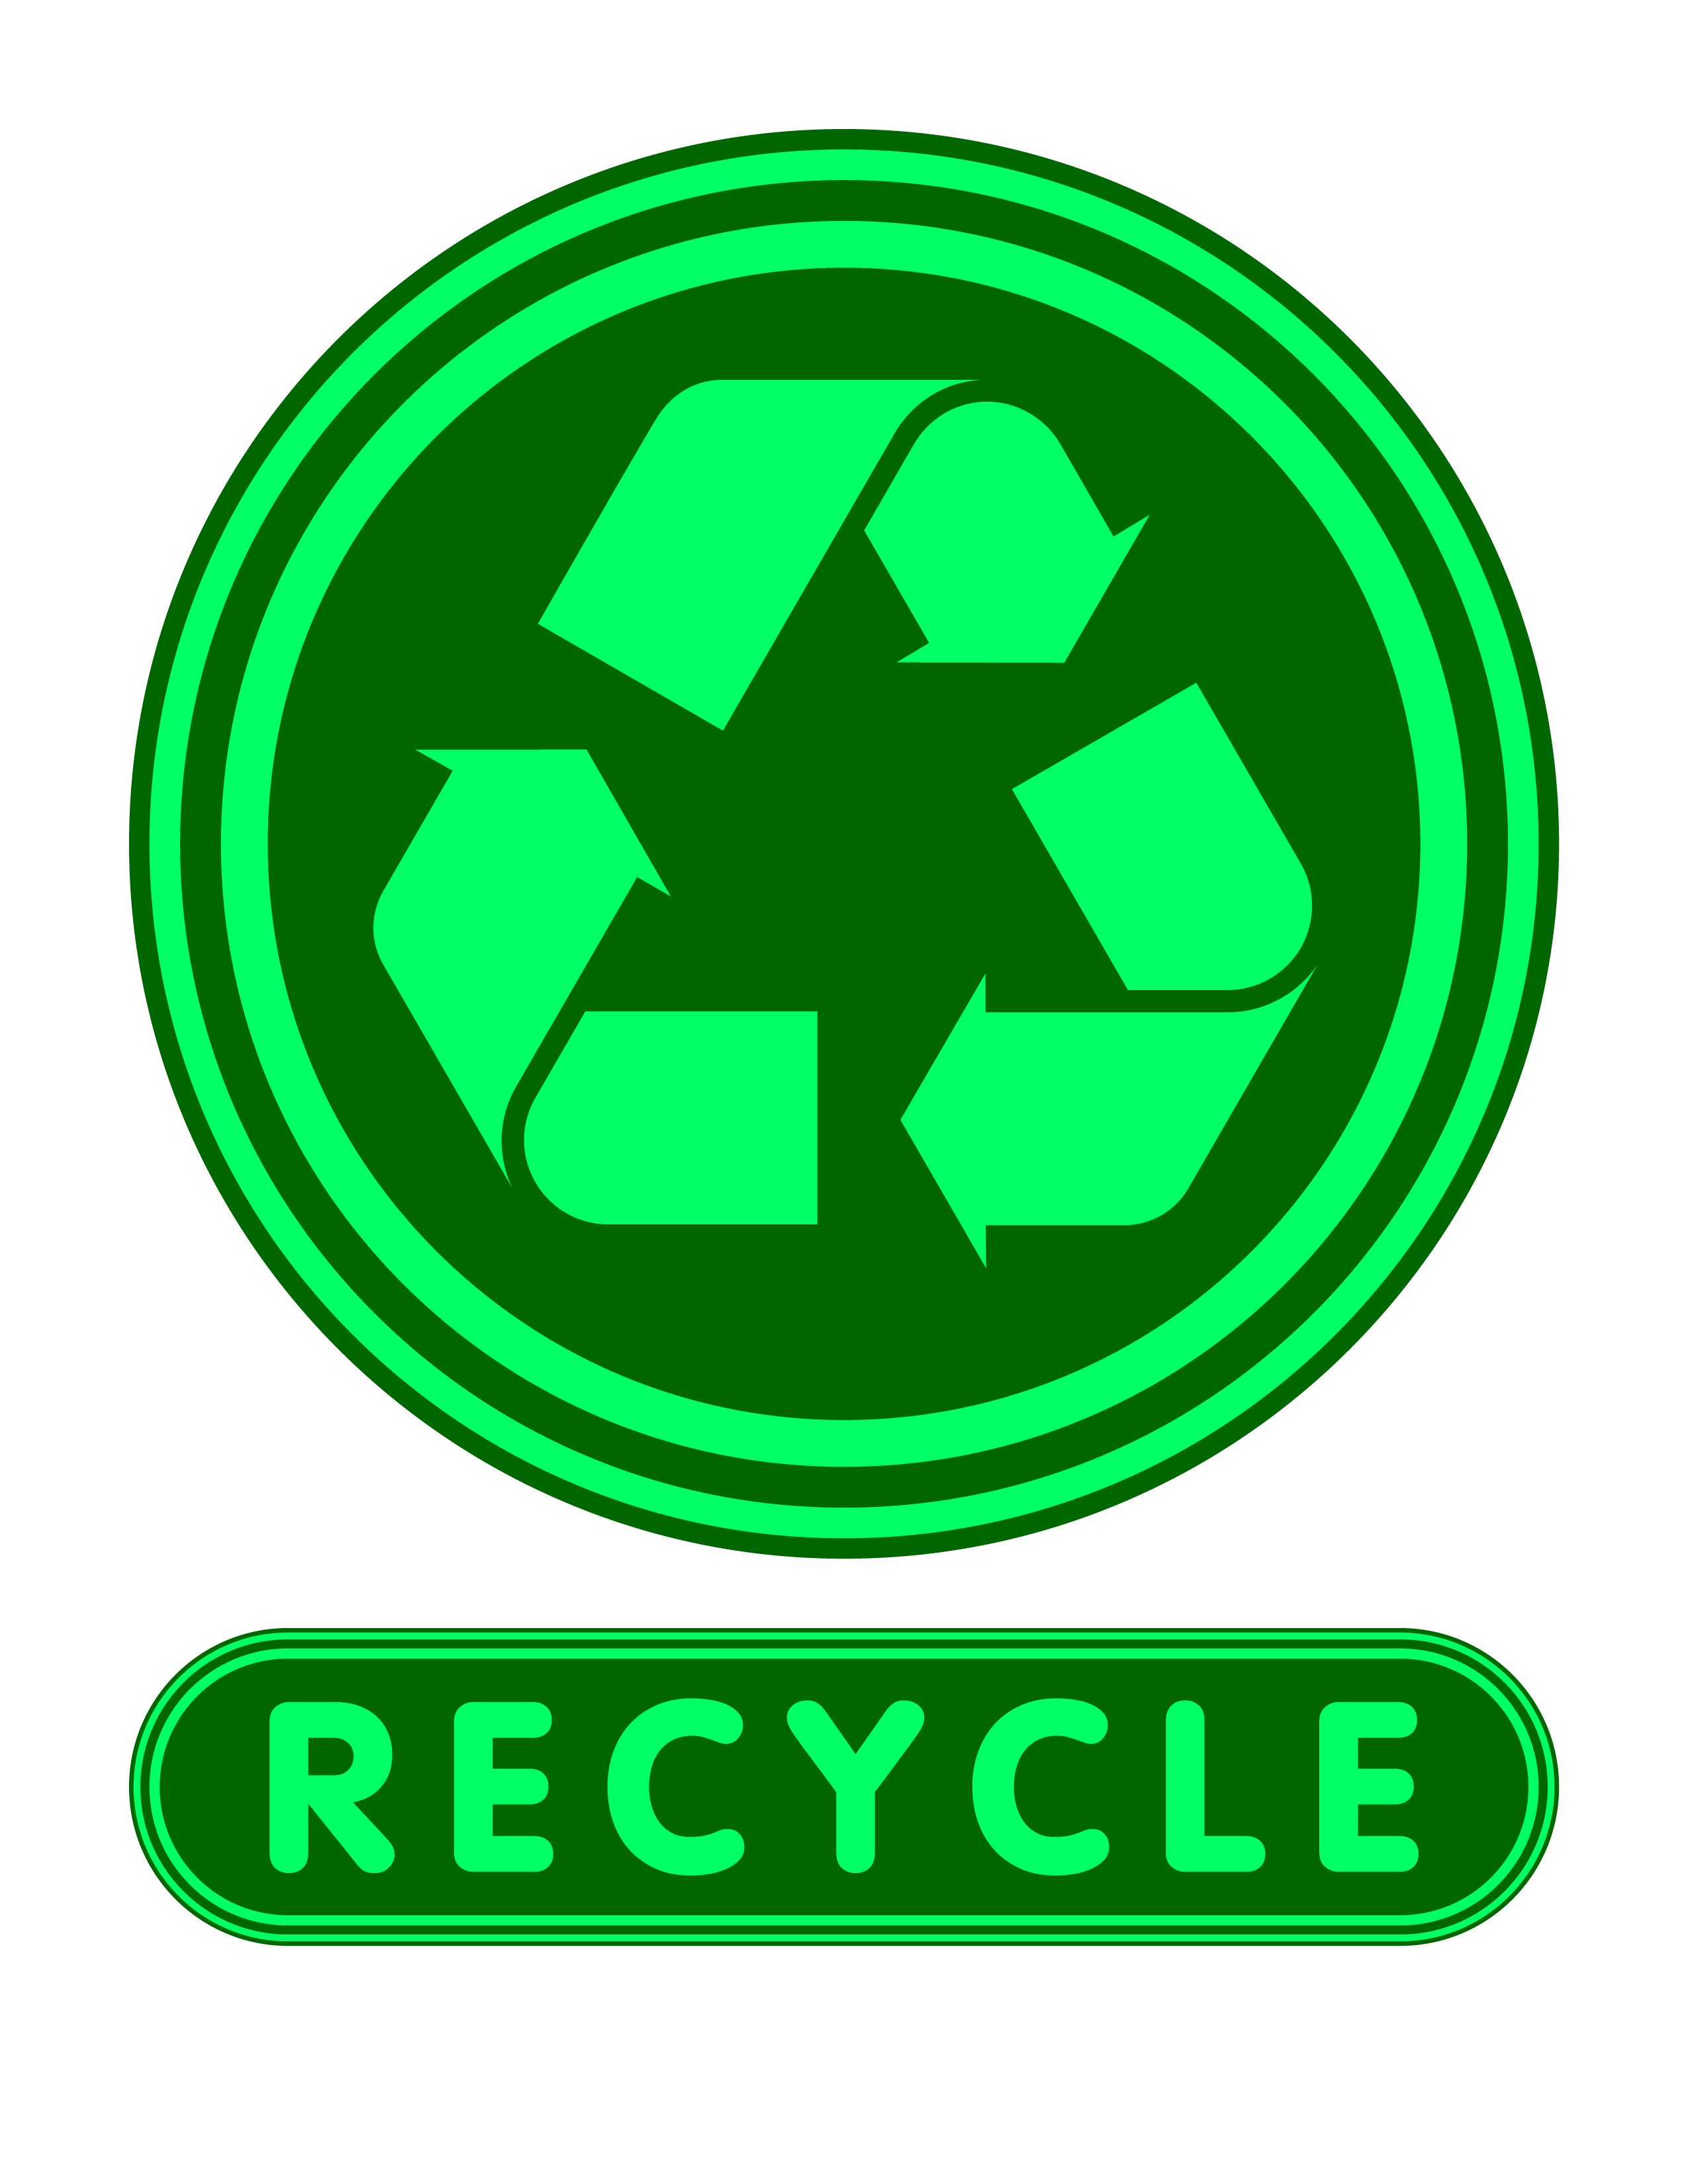 It is an image of Clean Printable Recycling Signs for Bins